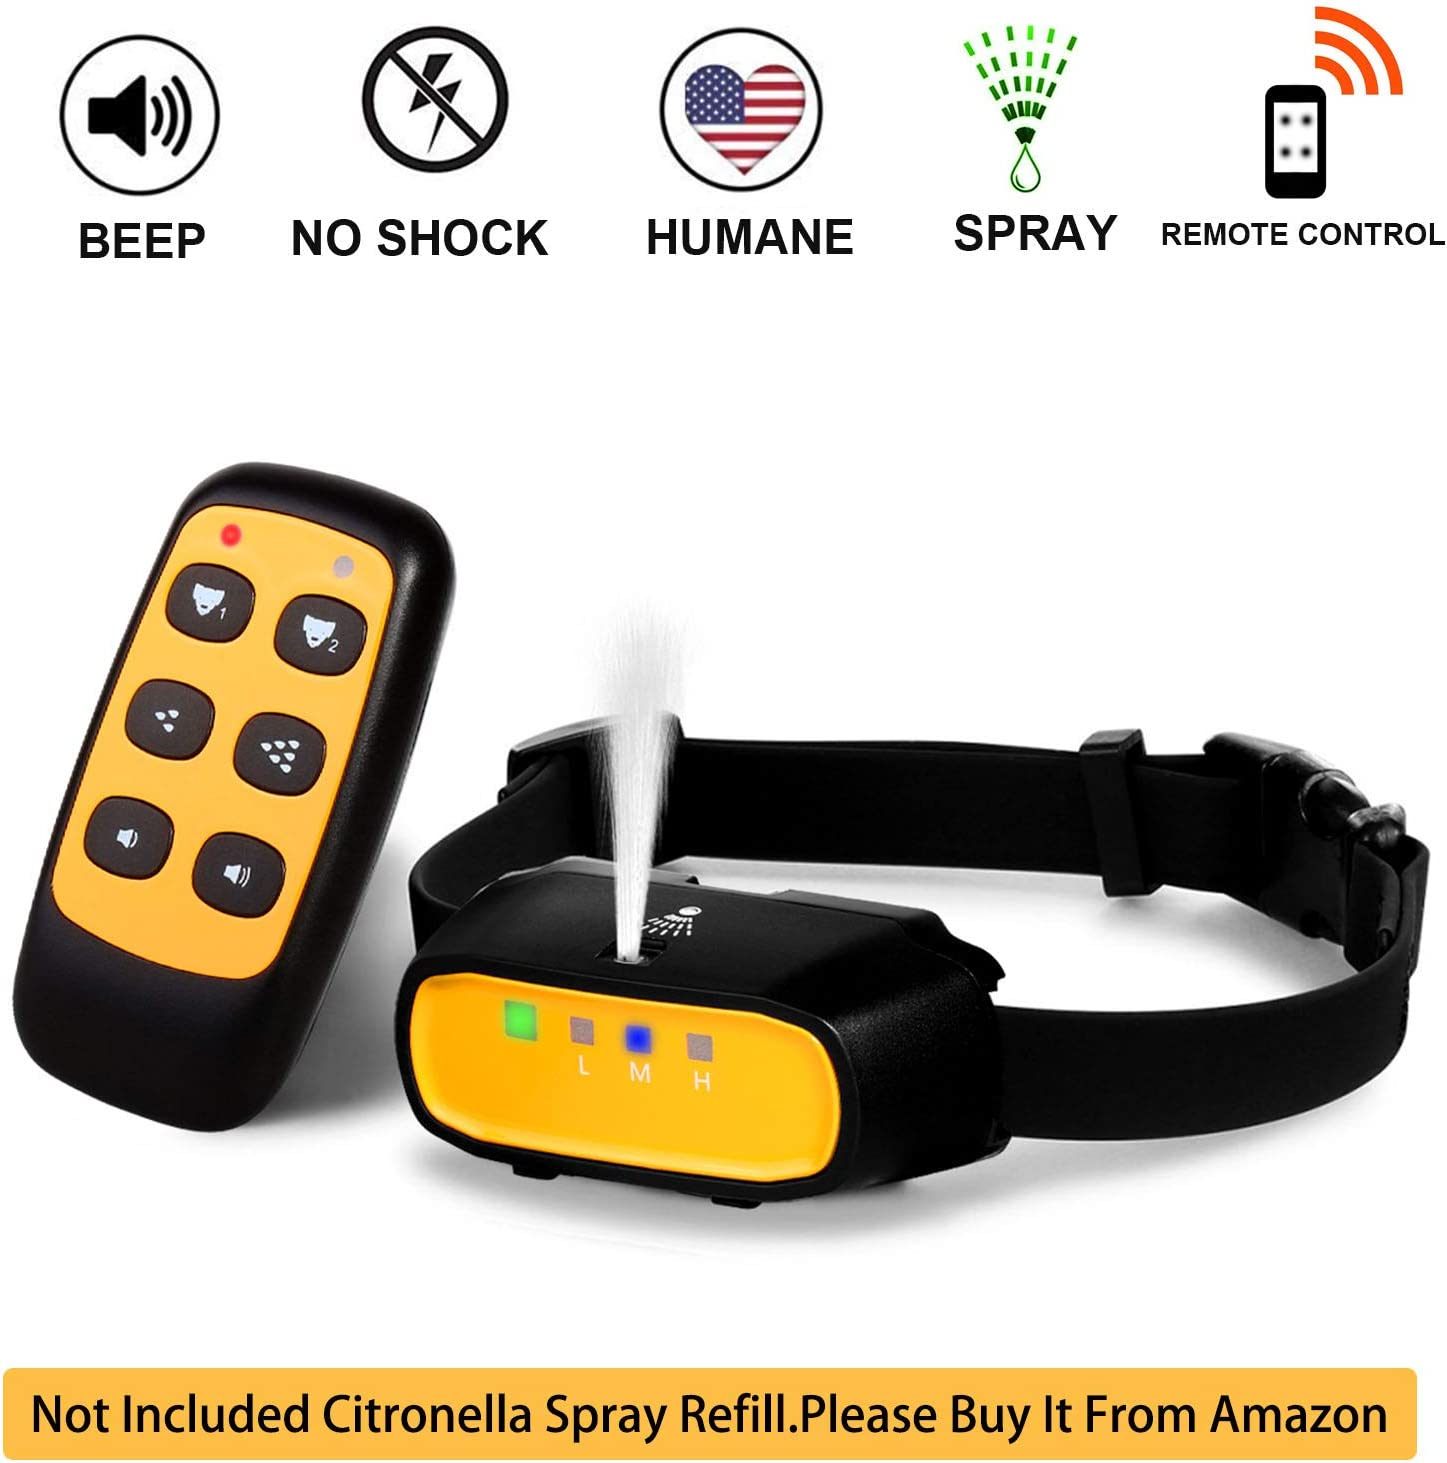 WWVVPET Spray Dog Training Collar,2 Modes Spray Dog Bark Collar Not Included Citronella Spray ,500 ft Range No Electric Shock Harmless,Rechargeable Waterproof